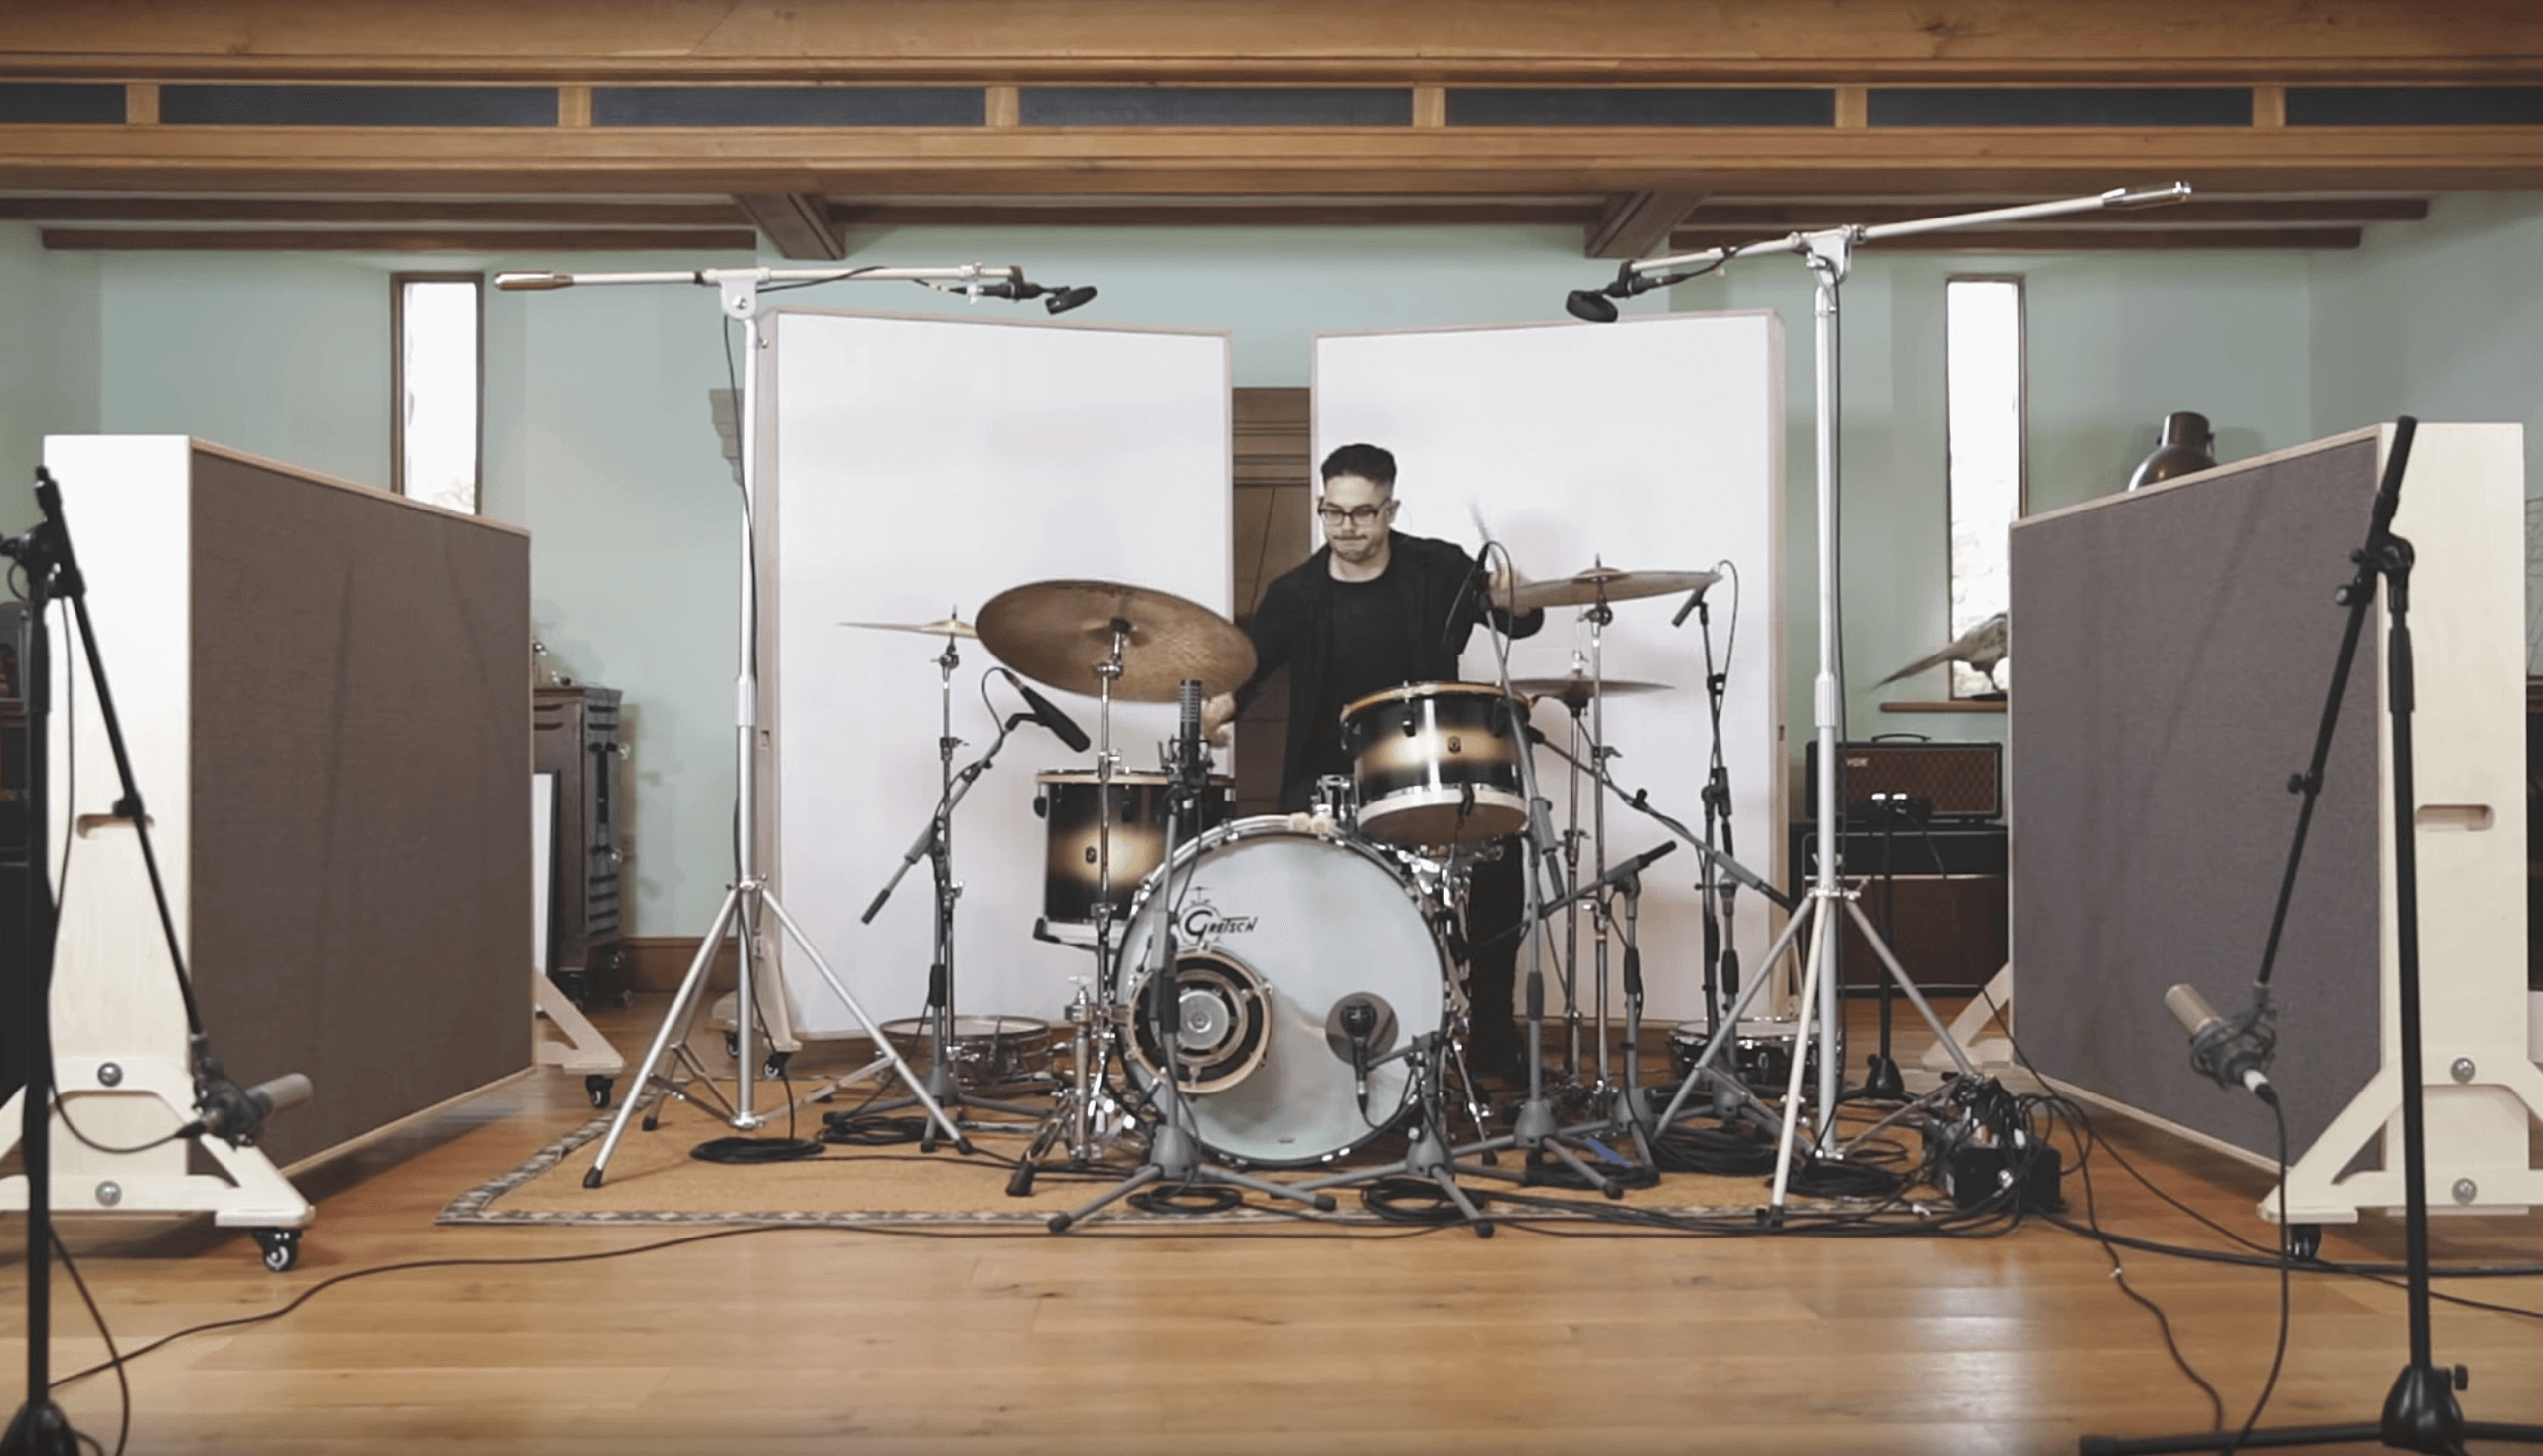 Joe Clegg behind a Vintage Gretsch drum kit